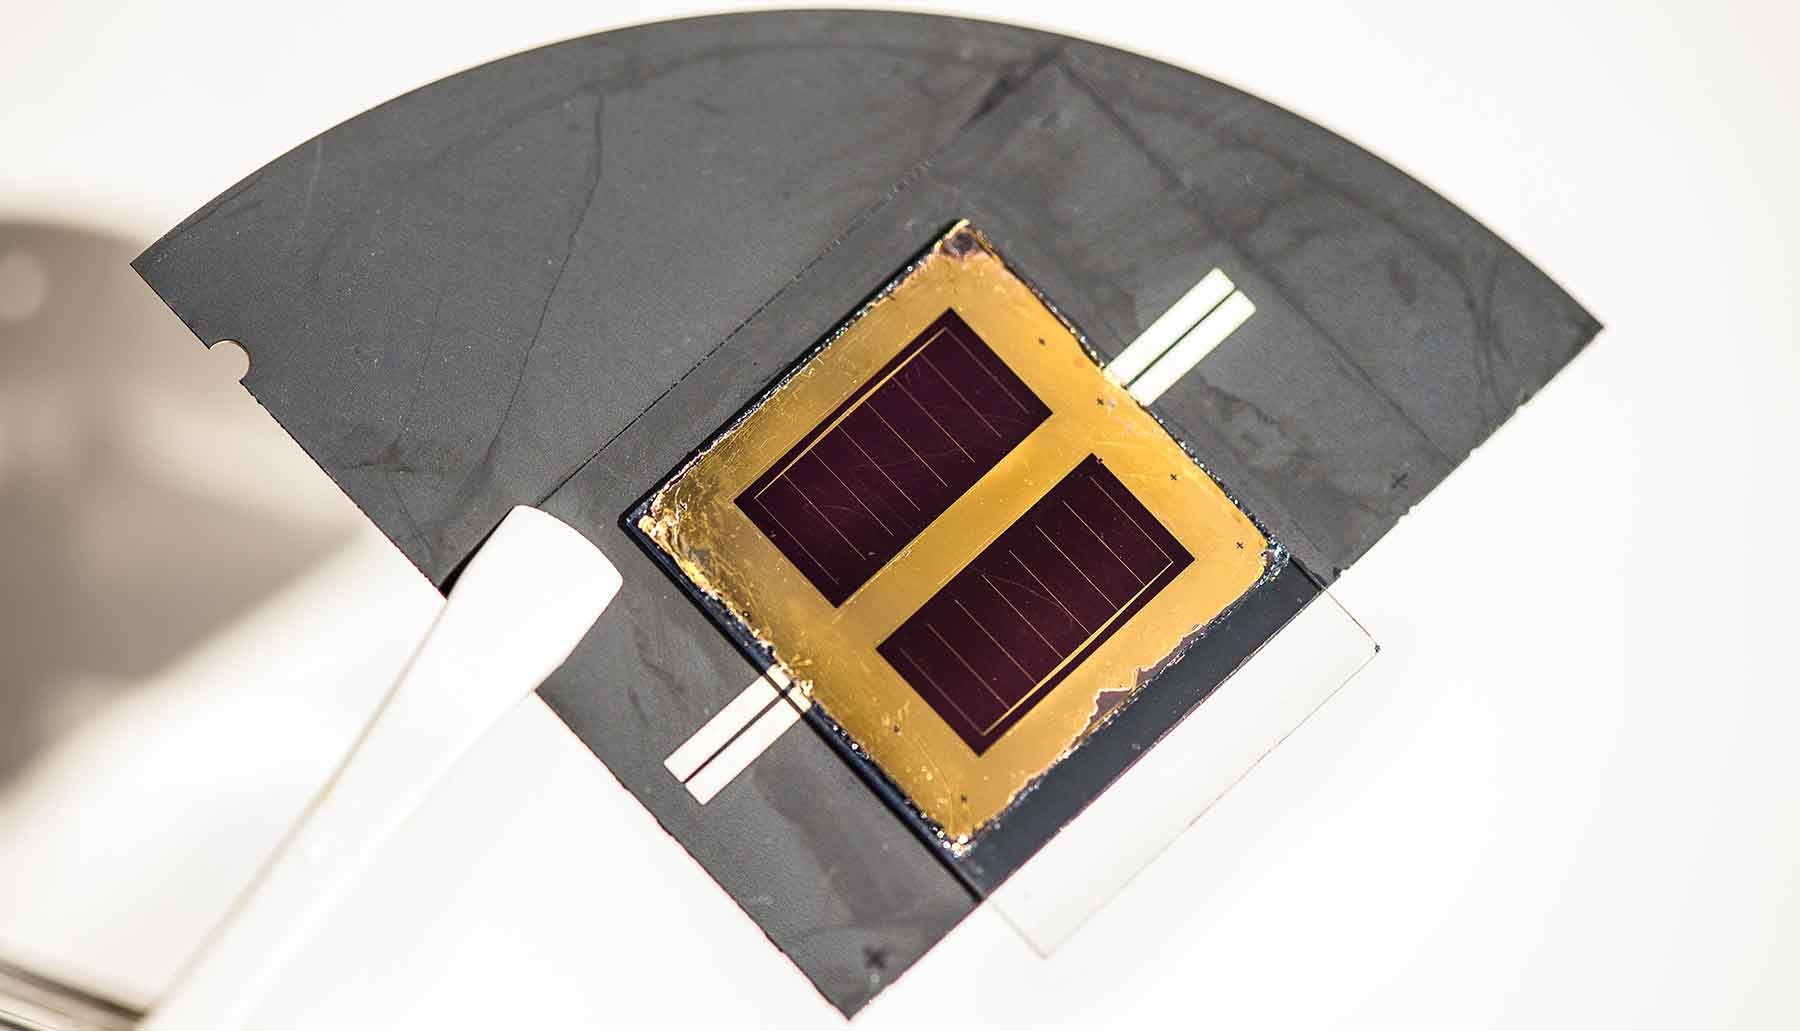 Photo shows a close-up view of a solar cell.